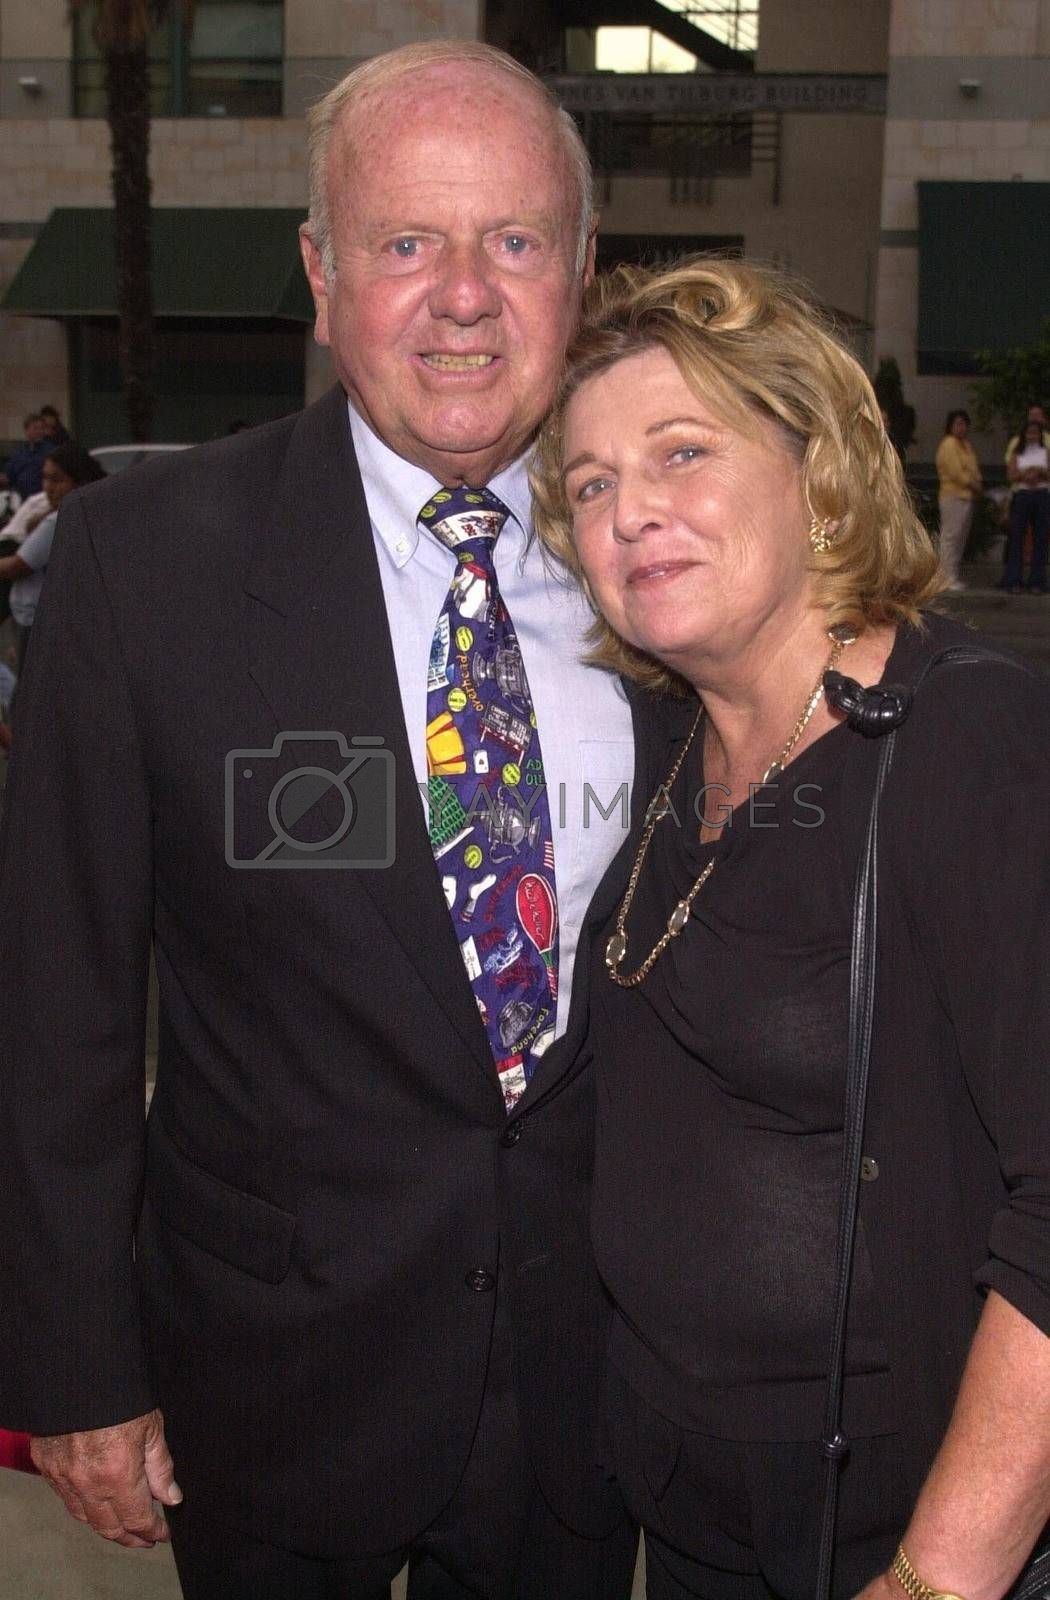 Dick Van Patten and Wife at the premiere of My 5 Wives in Santa Monica. 08-28-00